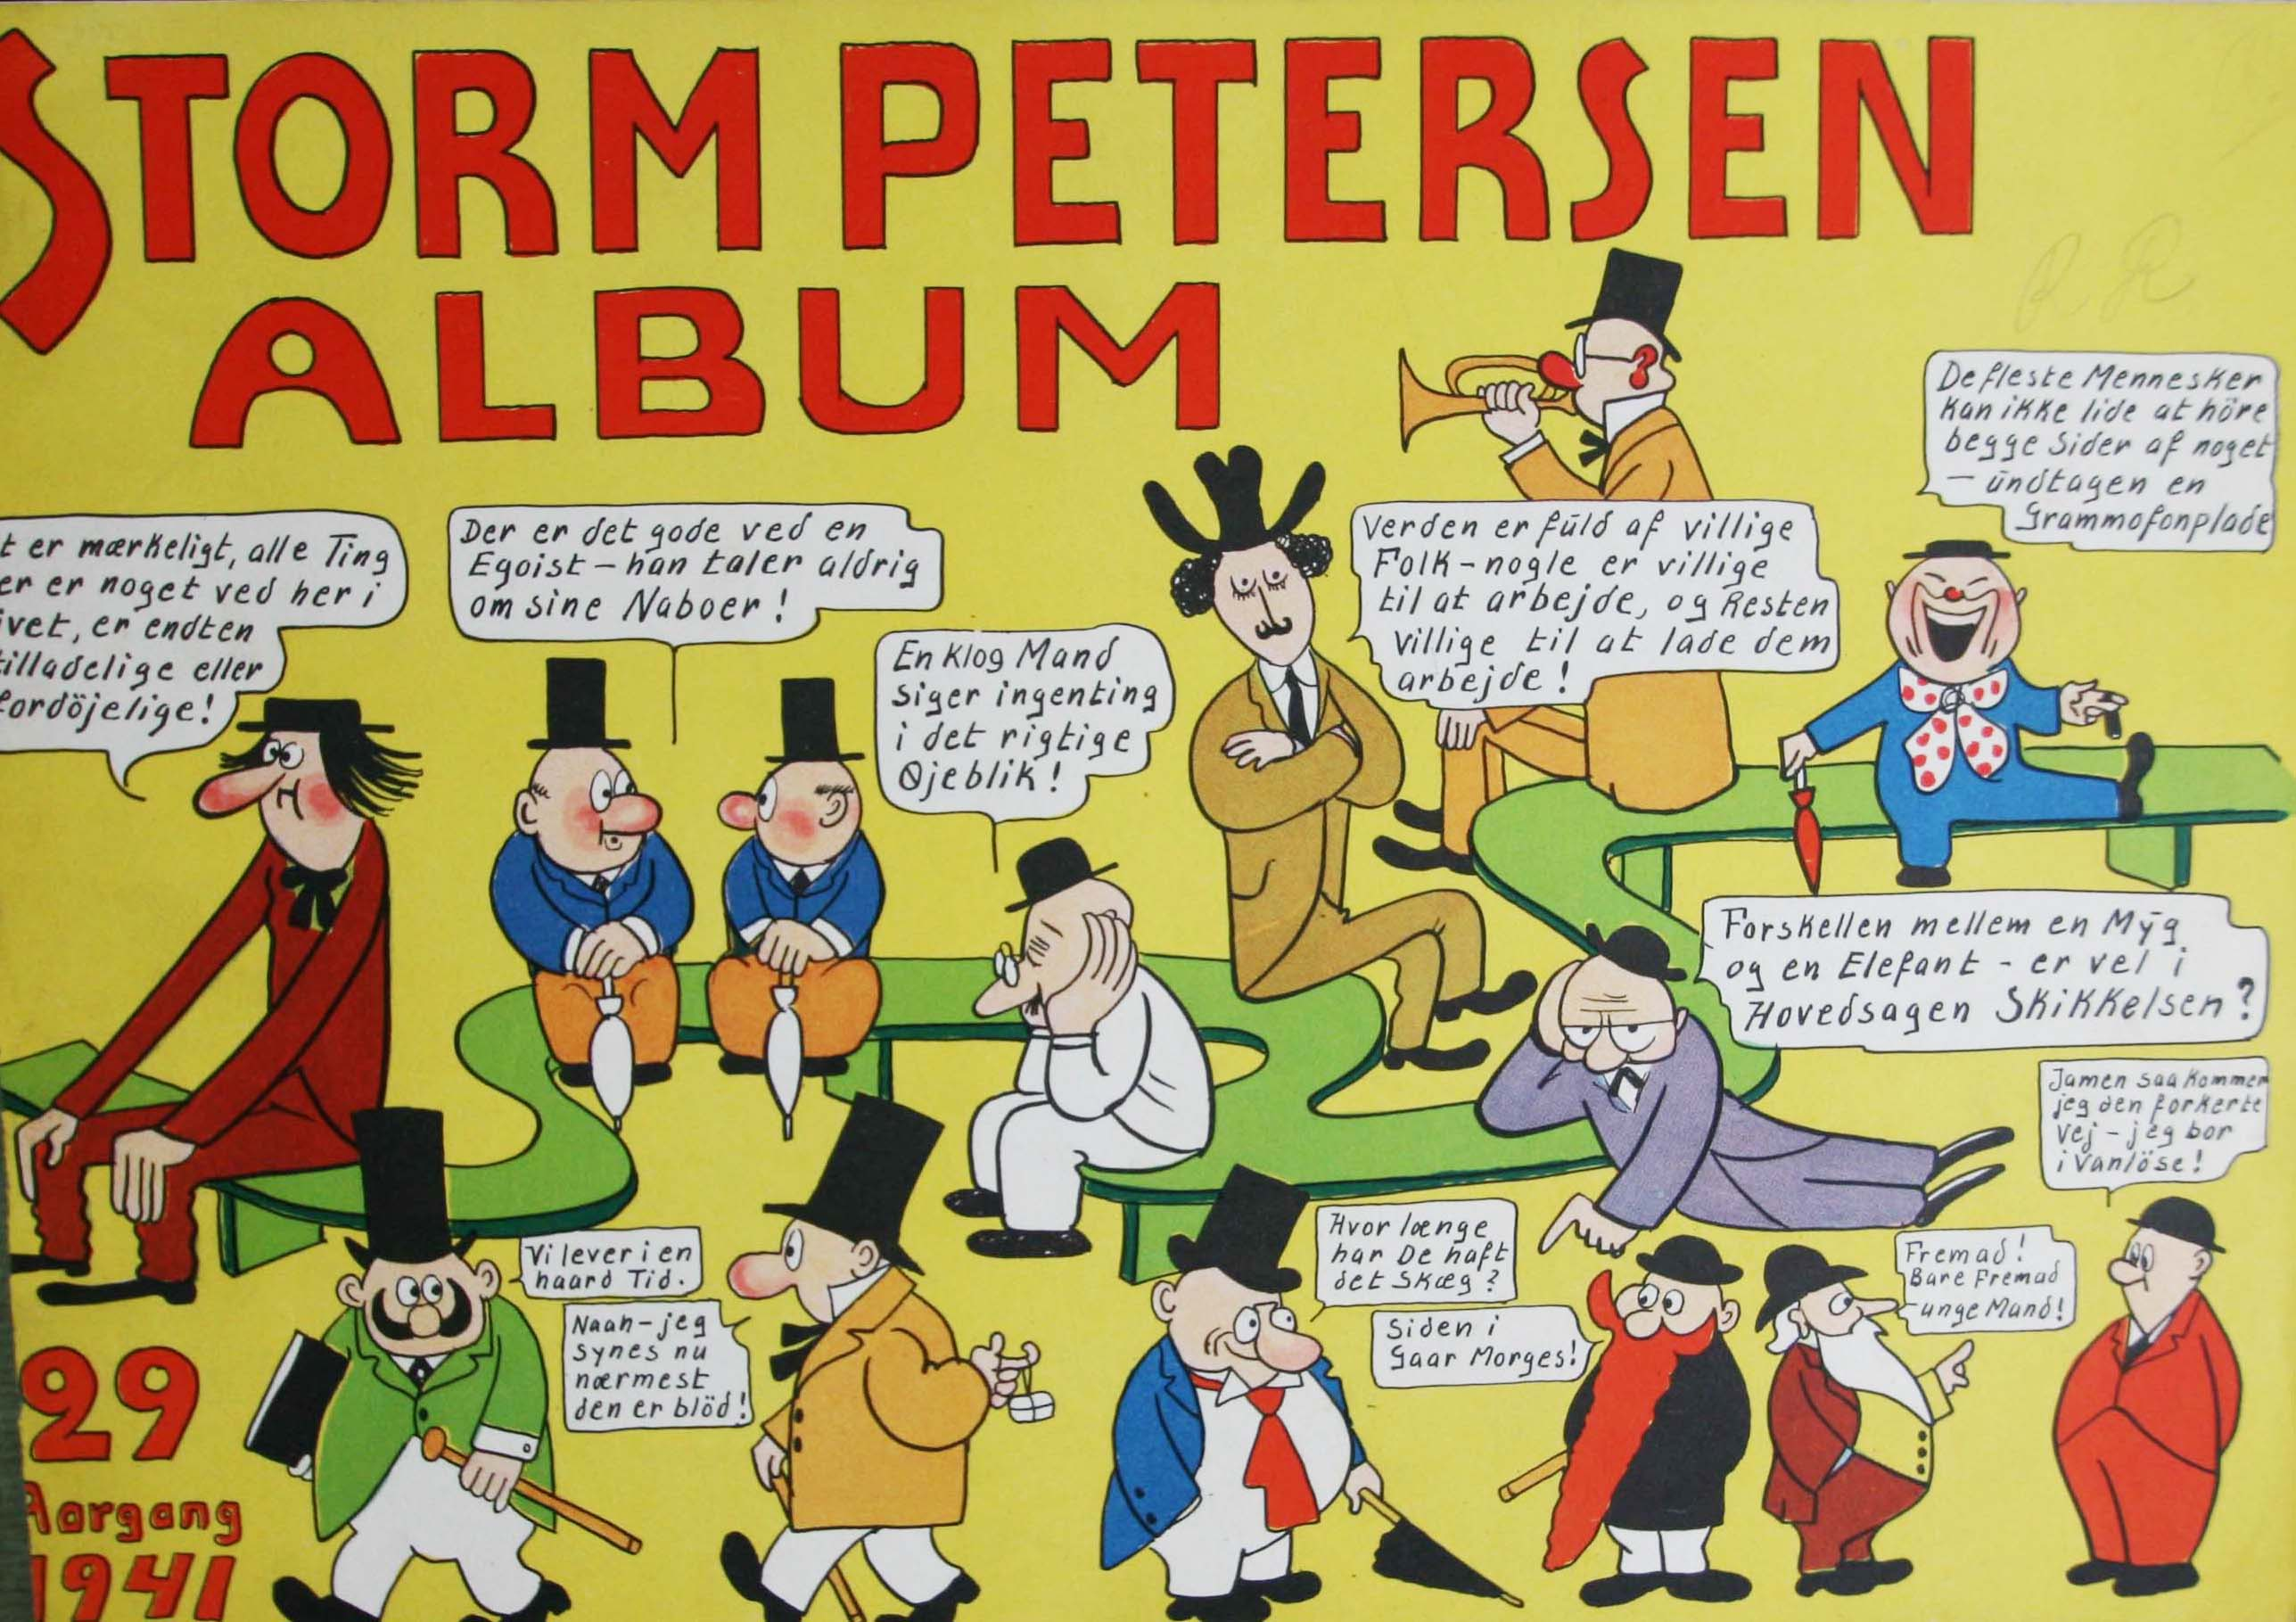 Robert Storm Petersen Storm P. Album 1941